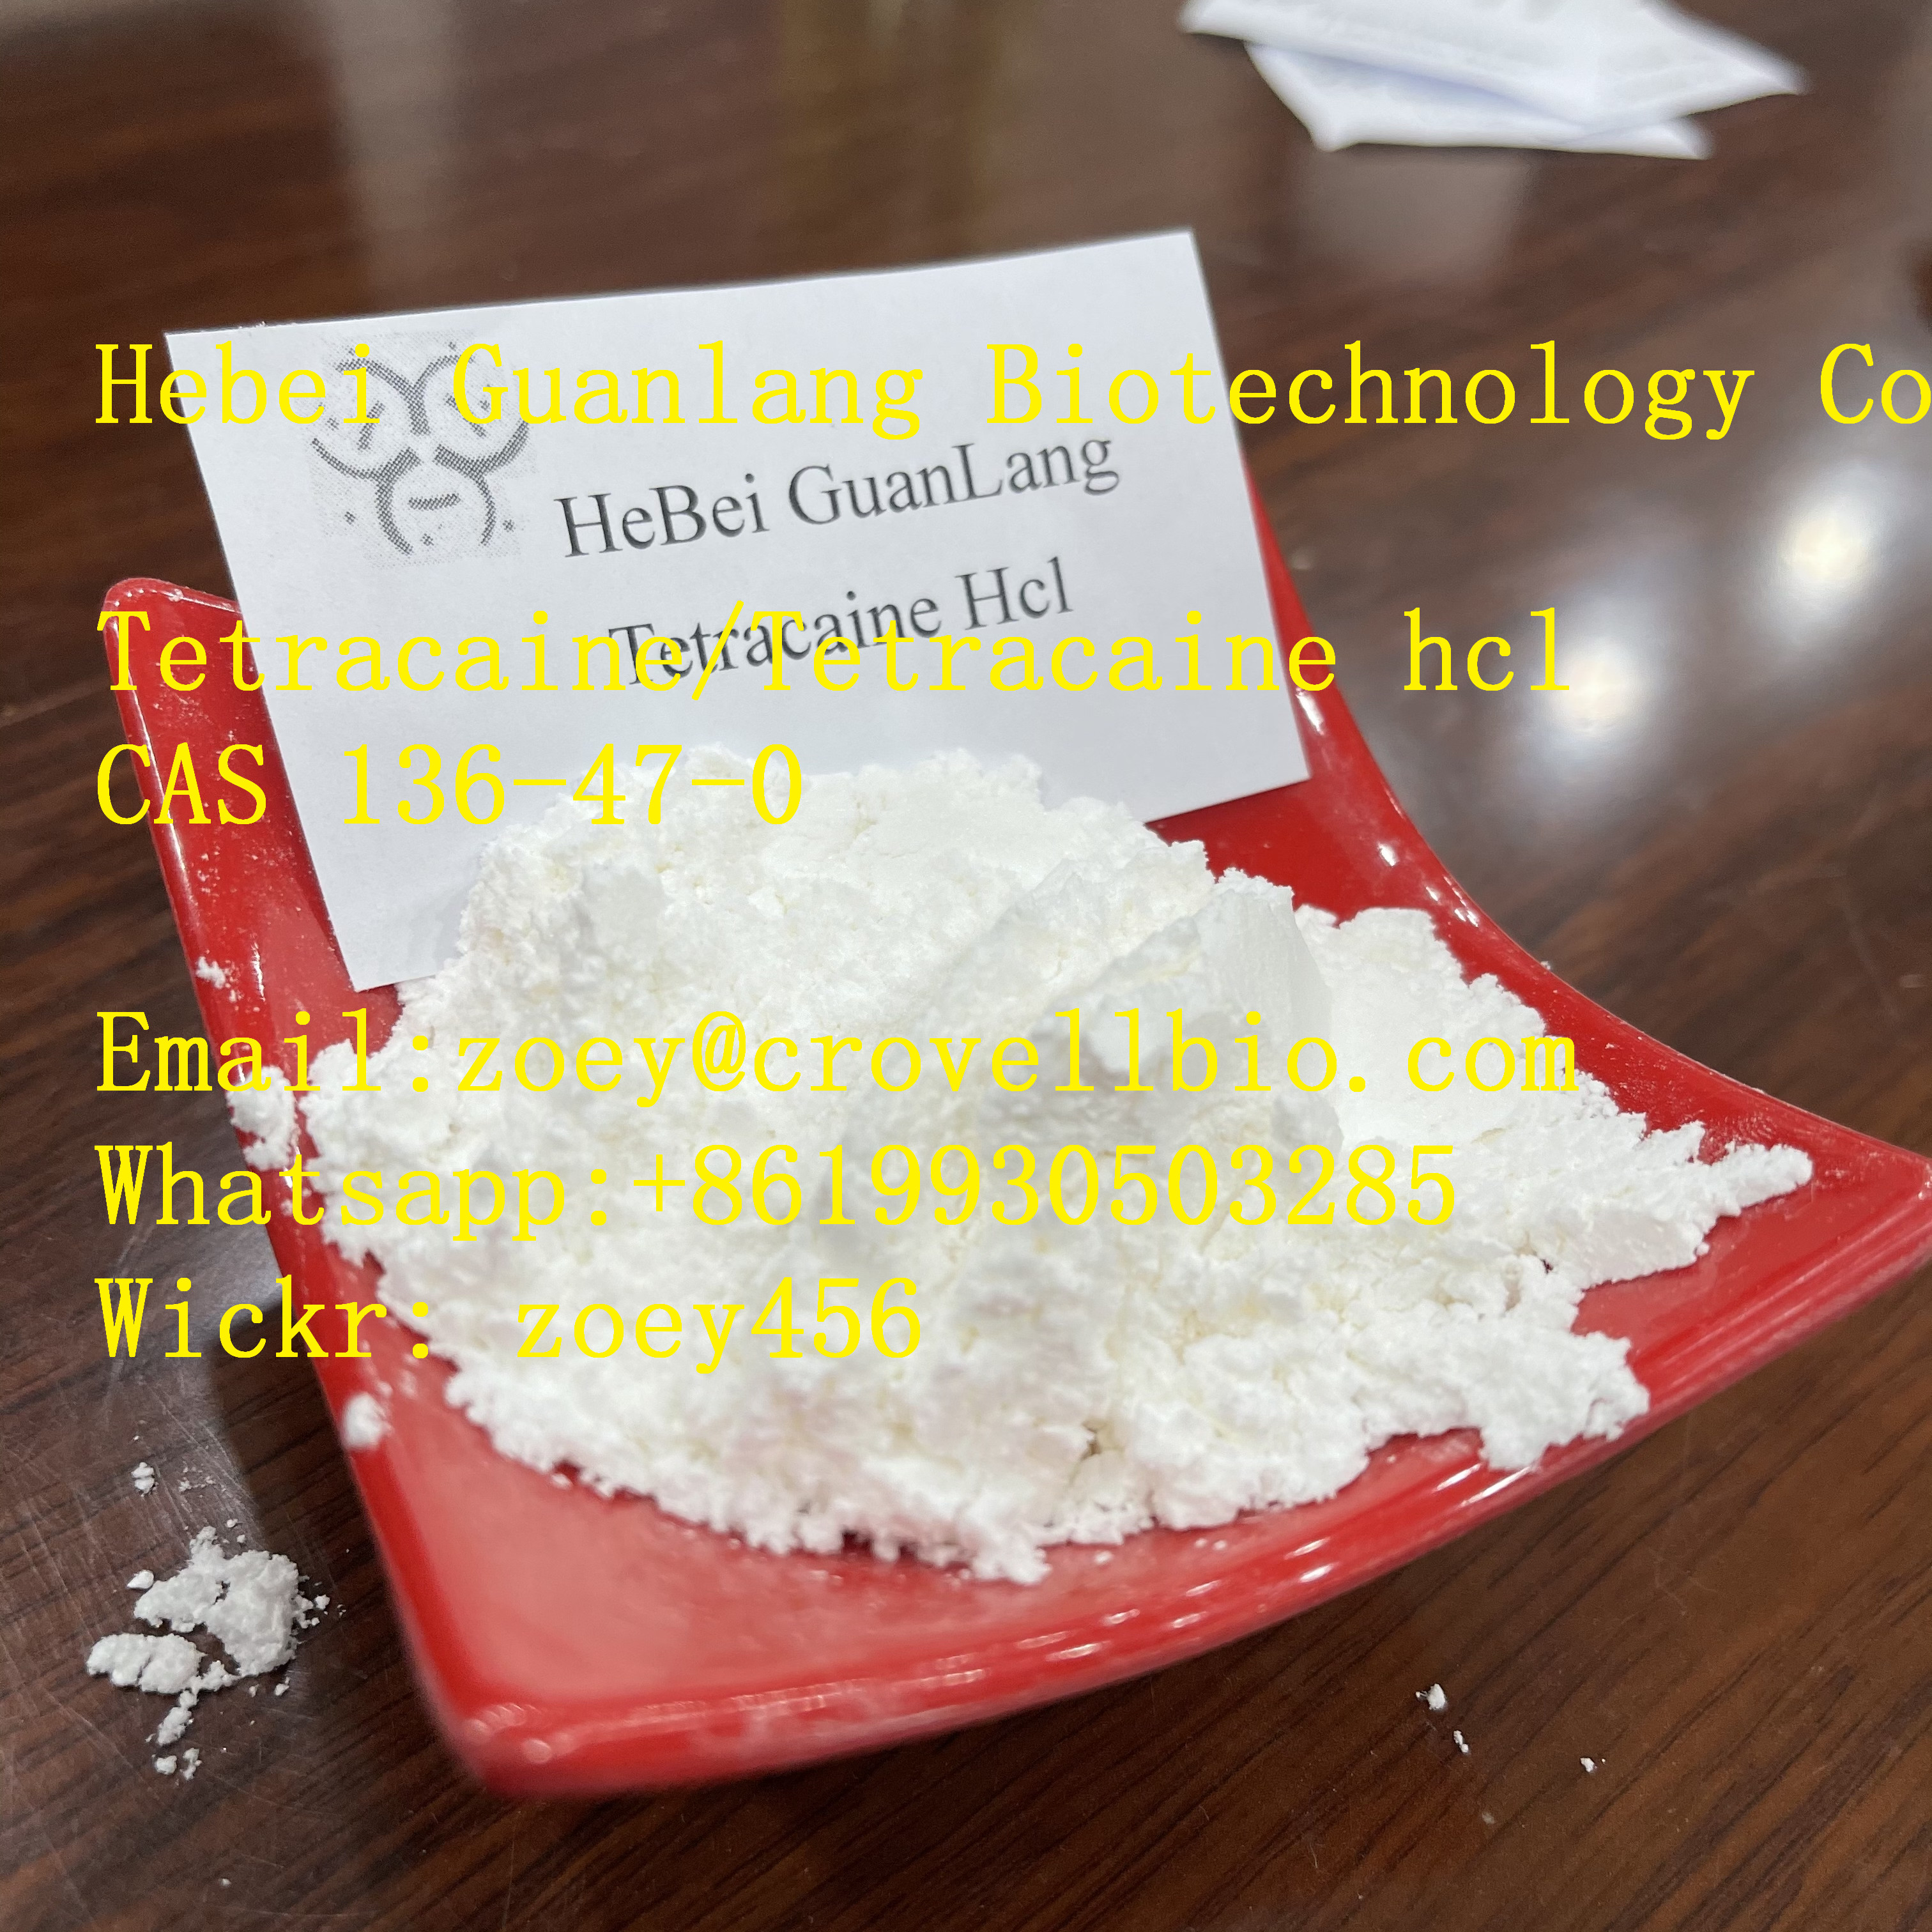 Tetracaine/Tetracaine hydrochloride China factory with low price zoey@,China,Business,Business For Sale,77traders